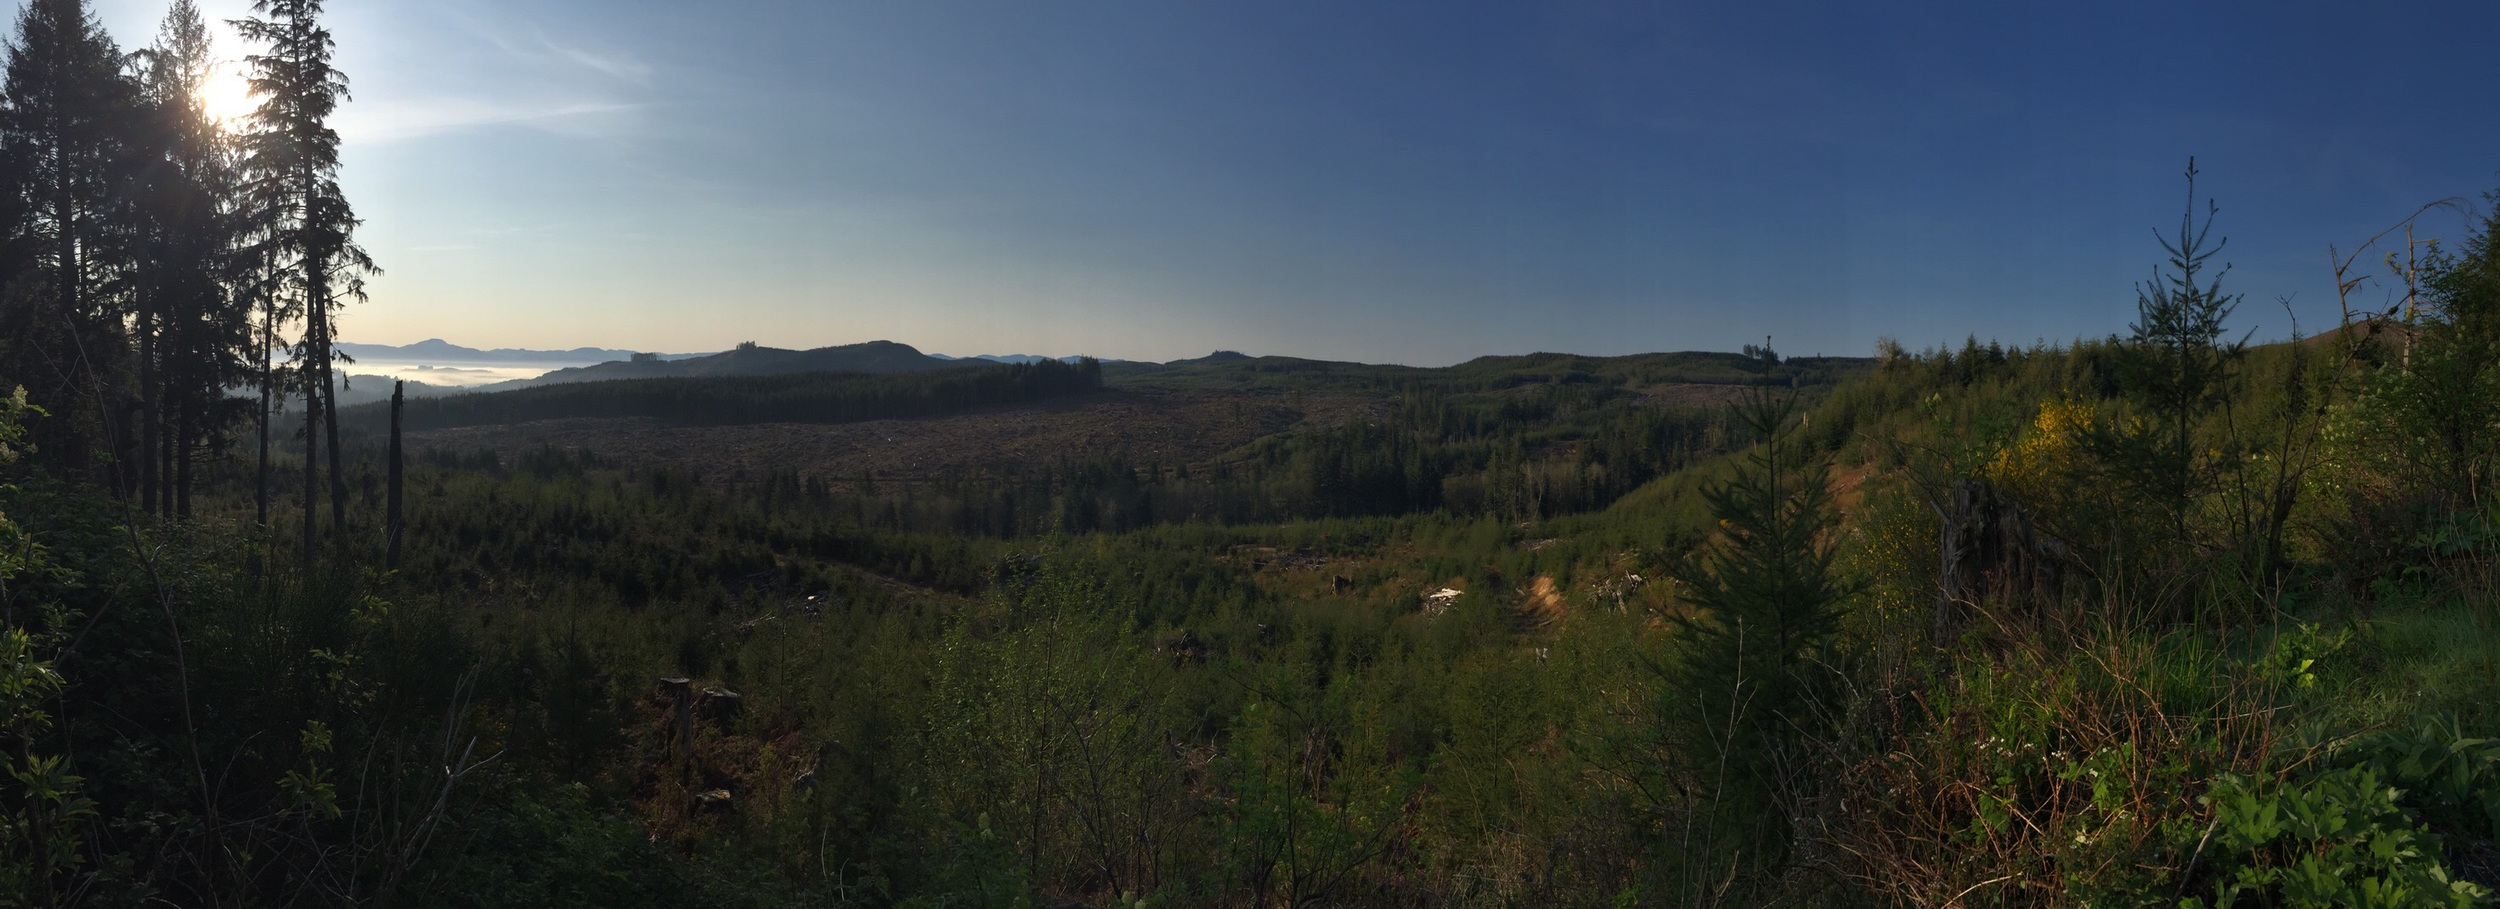 Panorama from Highway 26